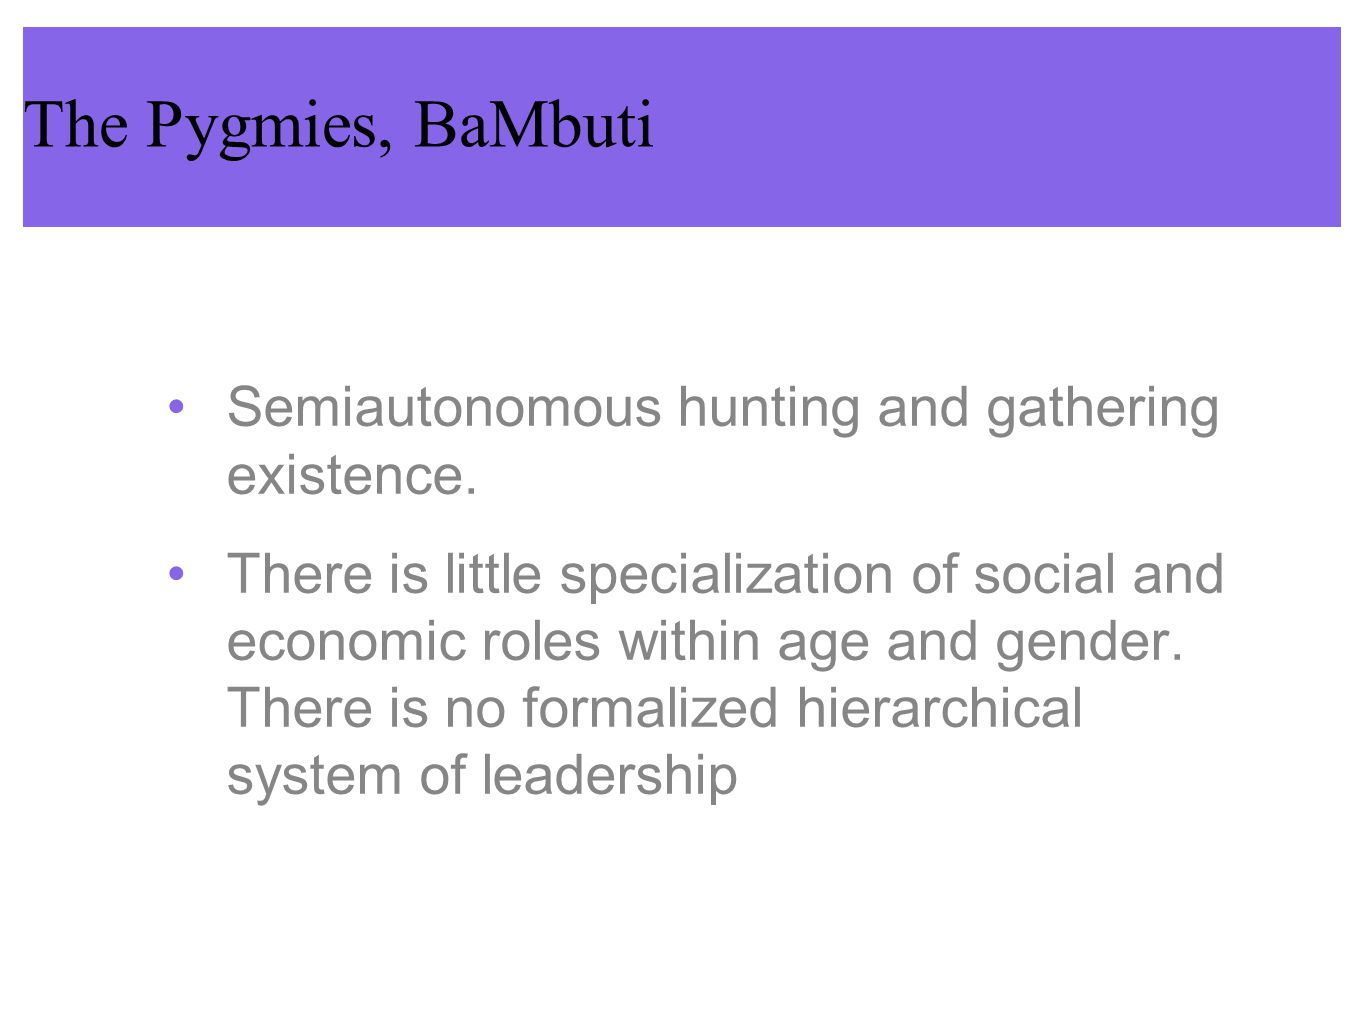 The Pygmies, BaMbuti Semiautonomous hunting and gathering existence.